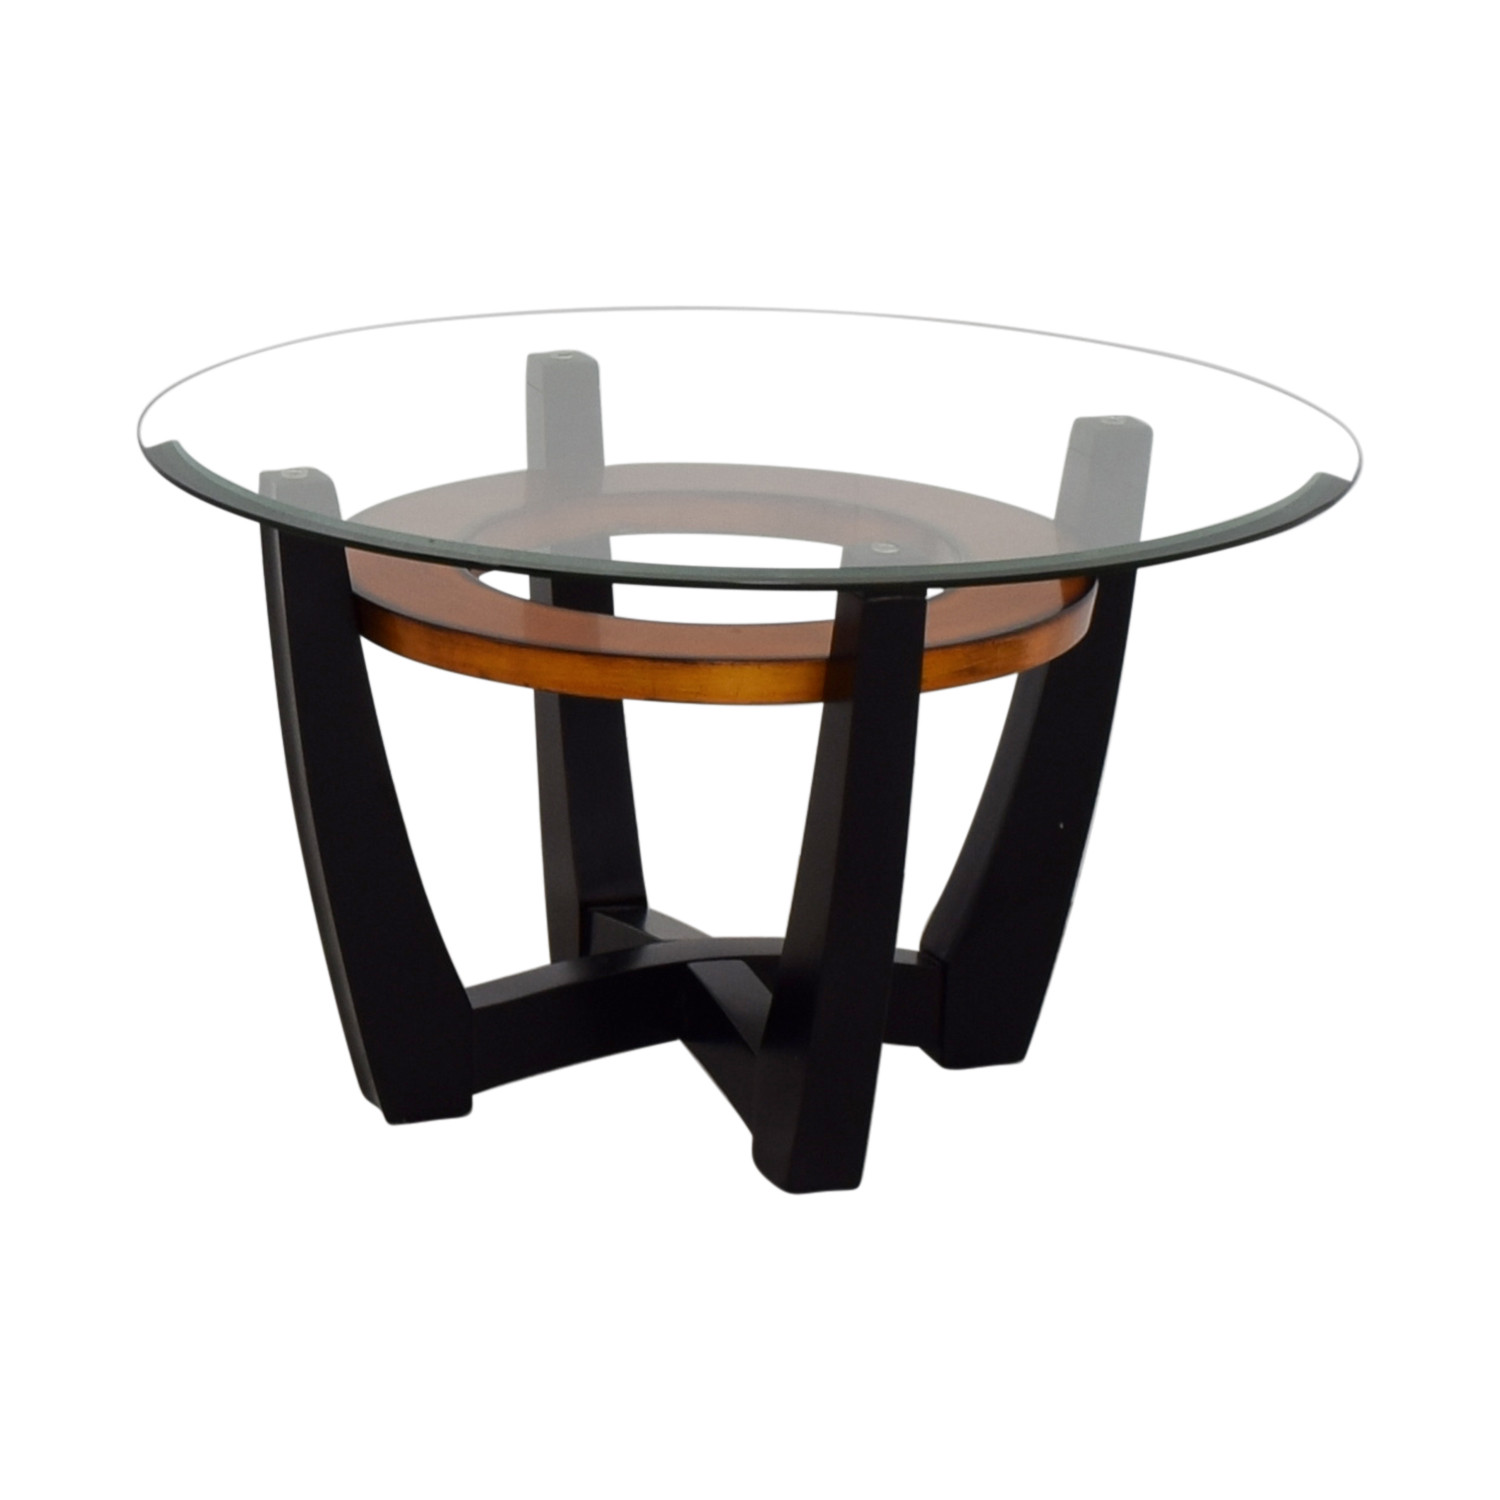 Best ideas about Wood And Glass Coffee Table . Save or Pin OFF Elation Elation Round Glass & Wood Coffee Table Now.